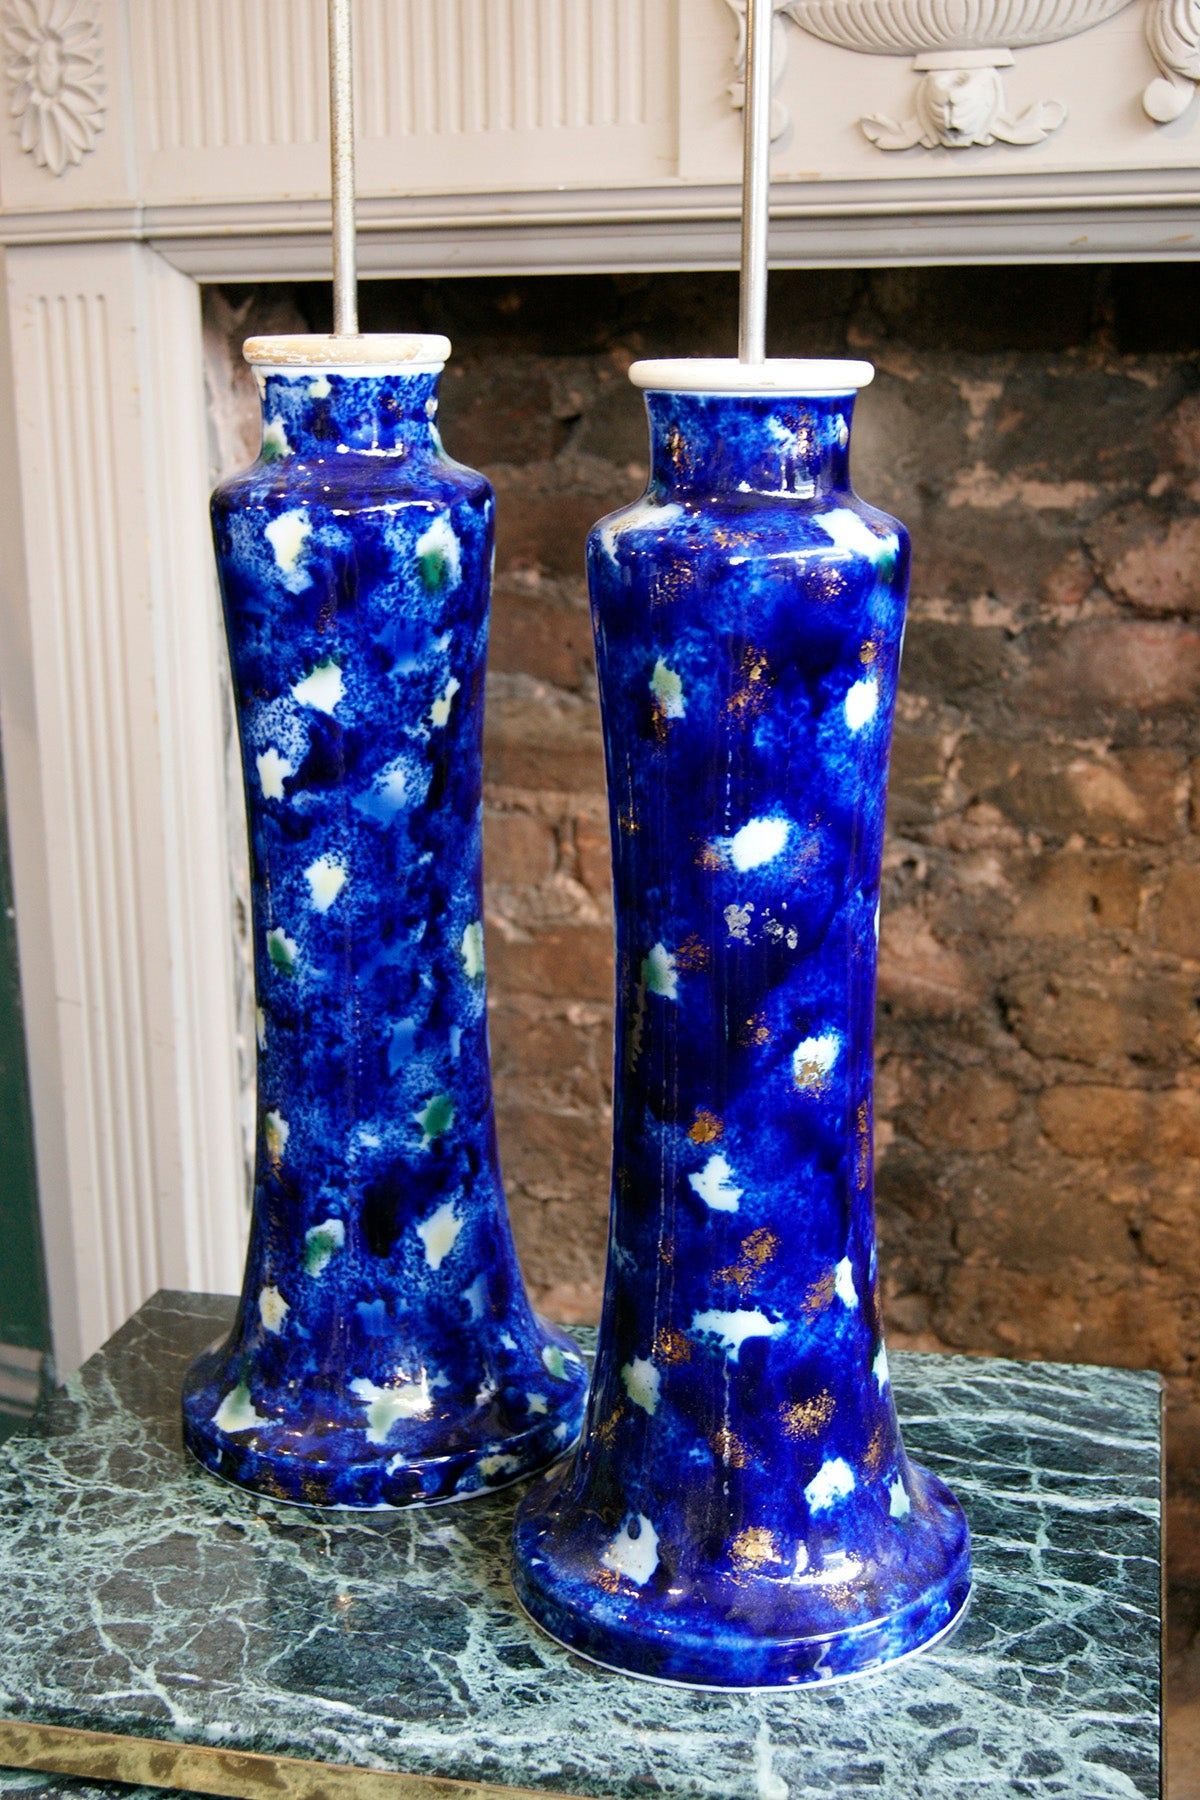 Pair of Blue Ceramic Lights